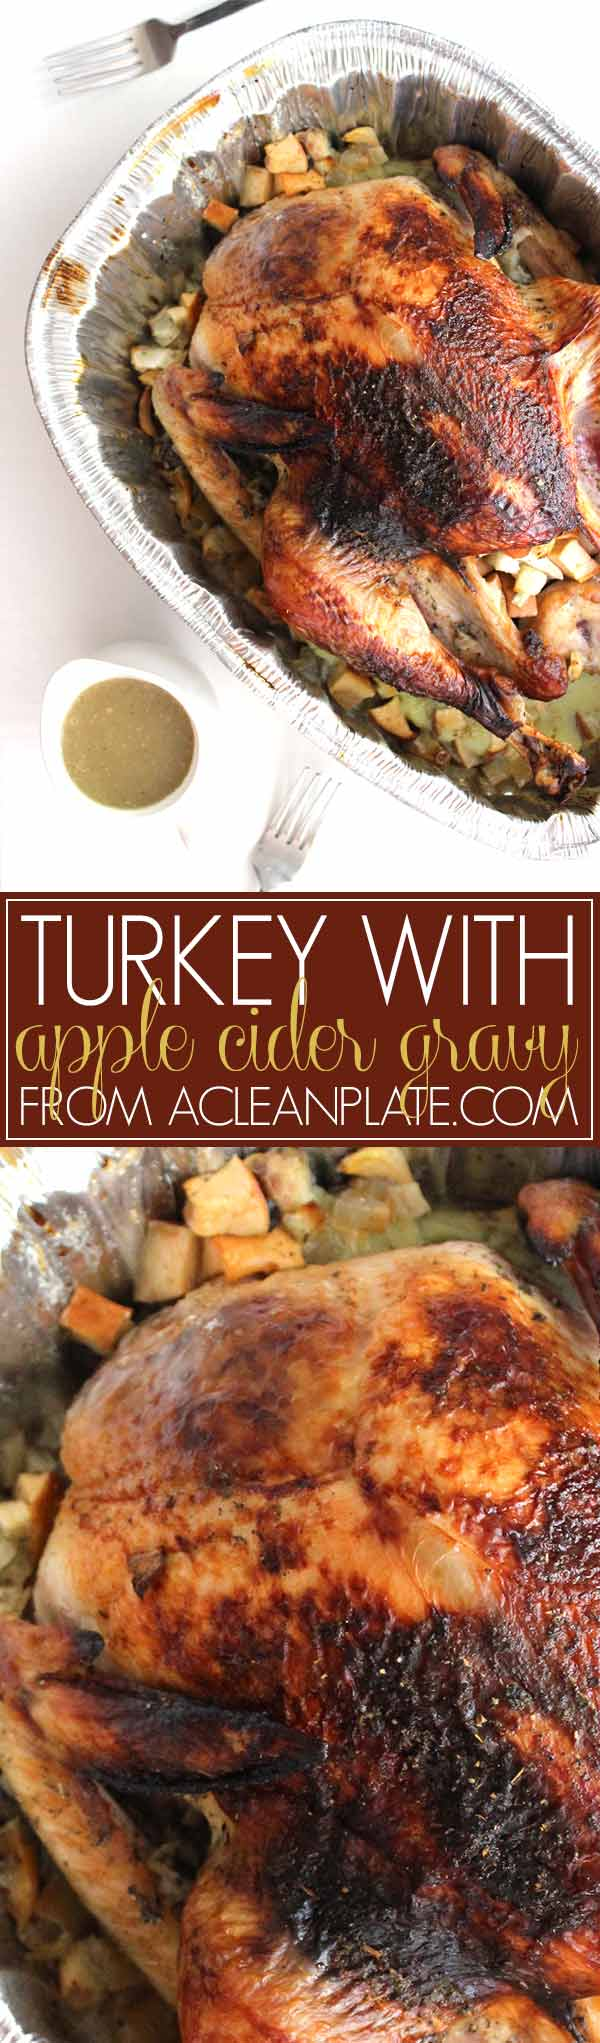 Roasted Turkey with Apple Cider Gravy recipe from acleanplate.com